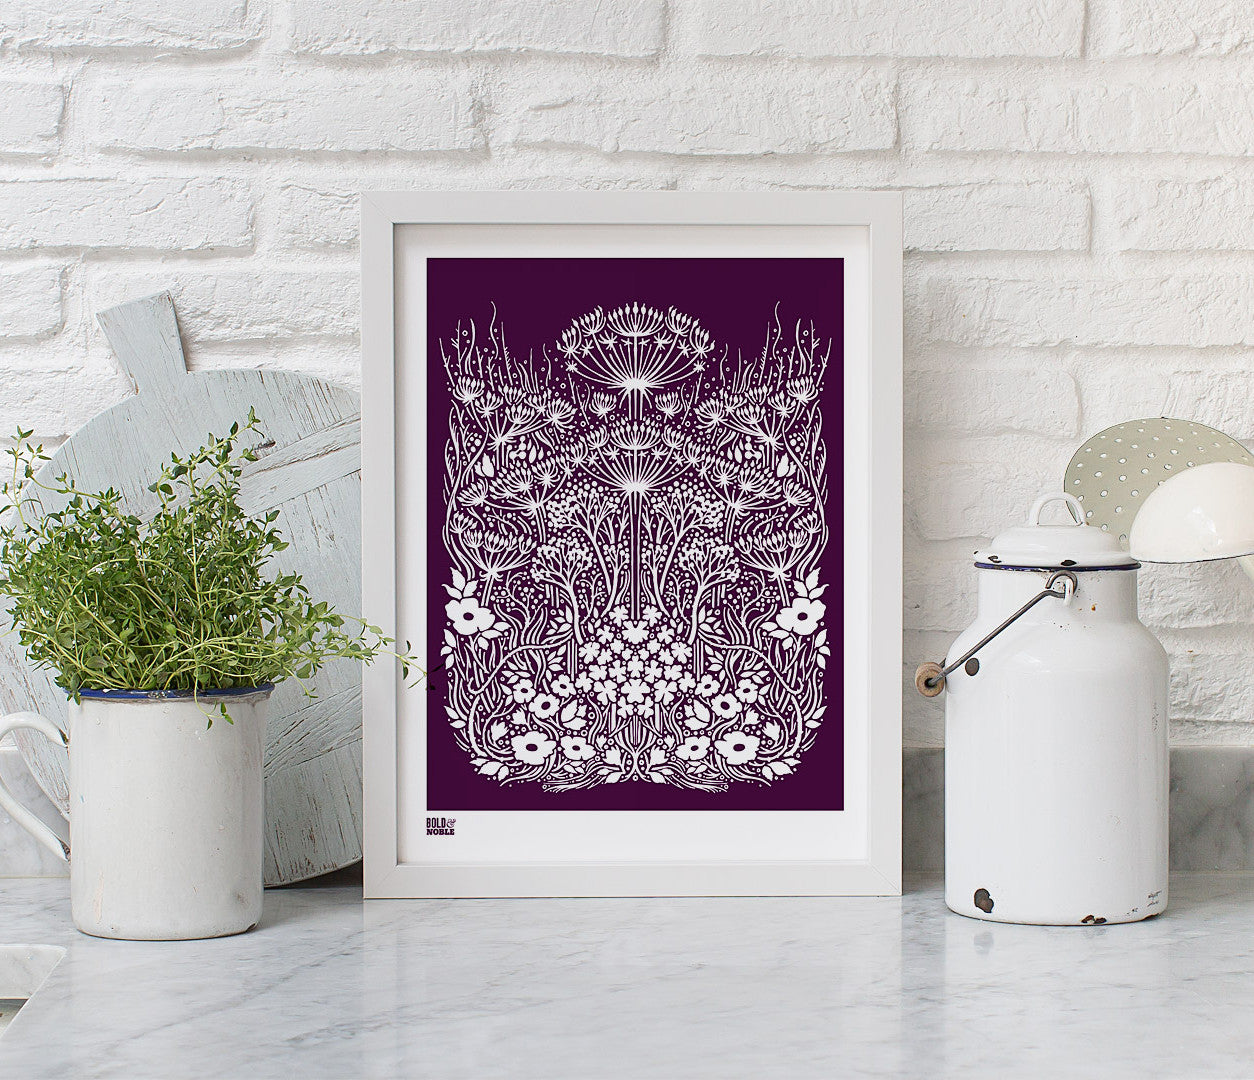 Wall Art ideas: Economical Screen Prints, Meadow Print in Dark Mulberry